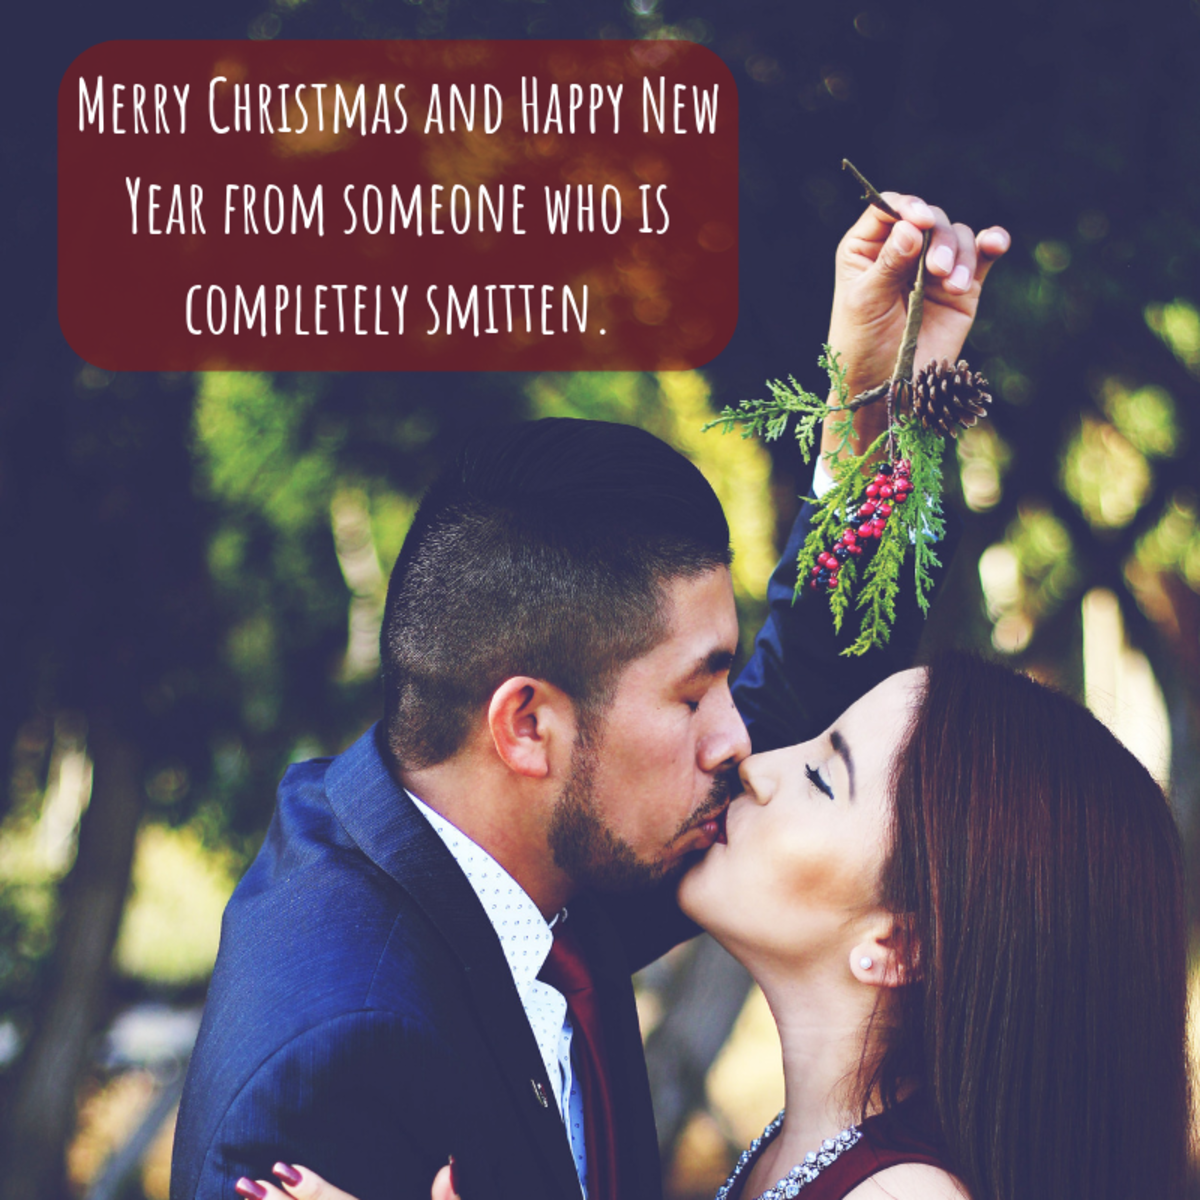 Help your significant other feel special this Christmas by writing something sweet in their card.